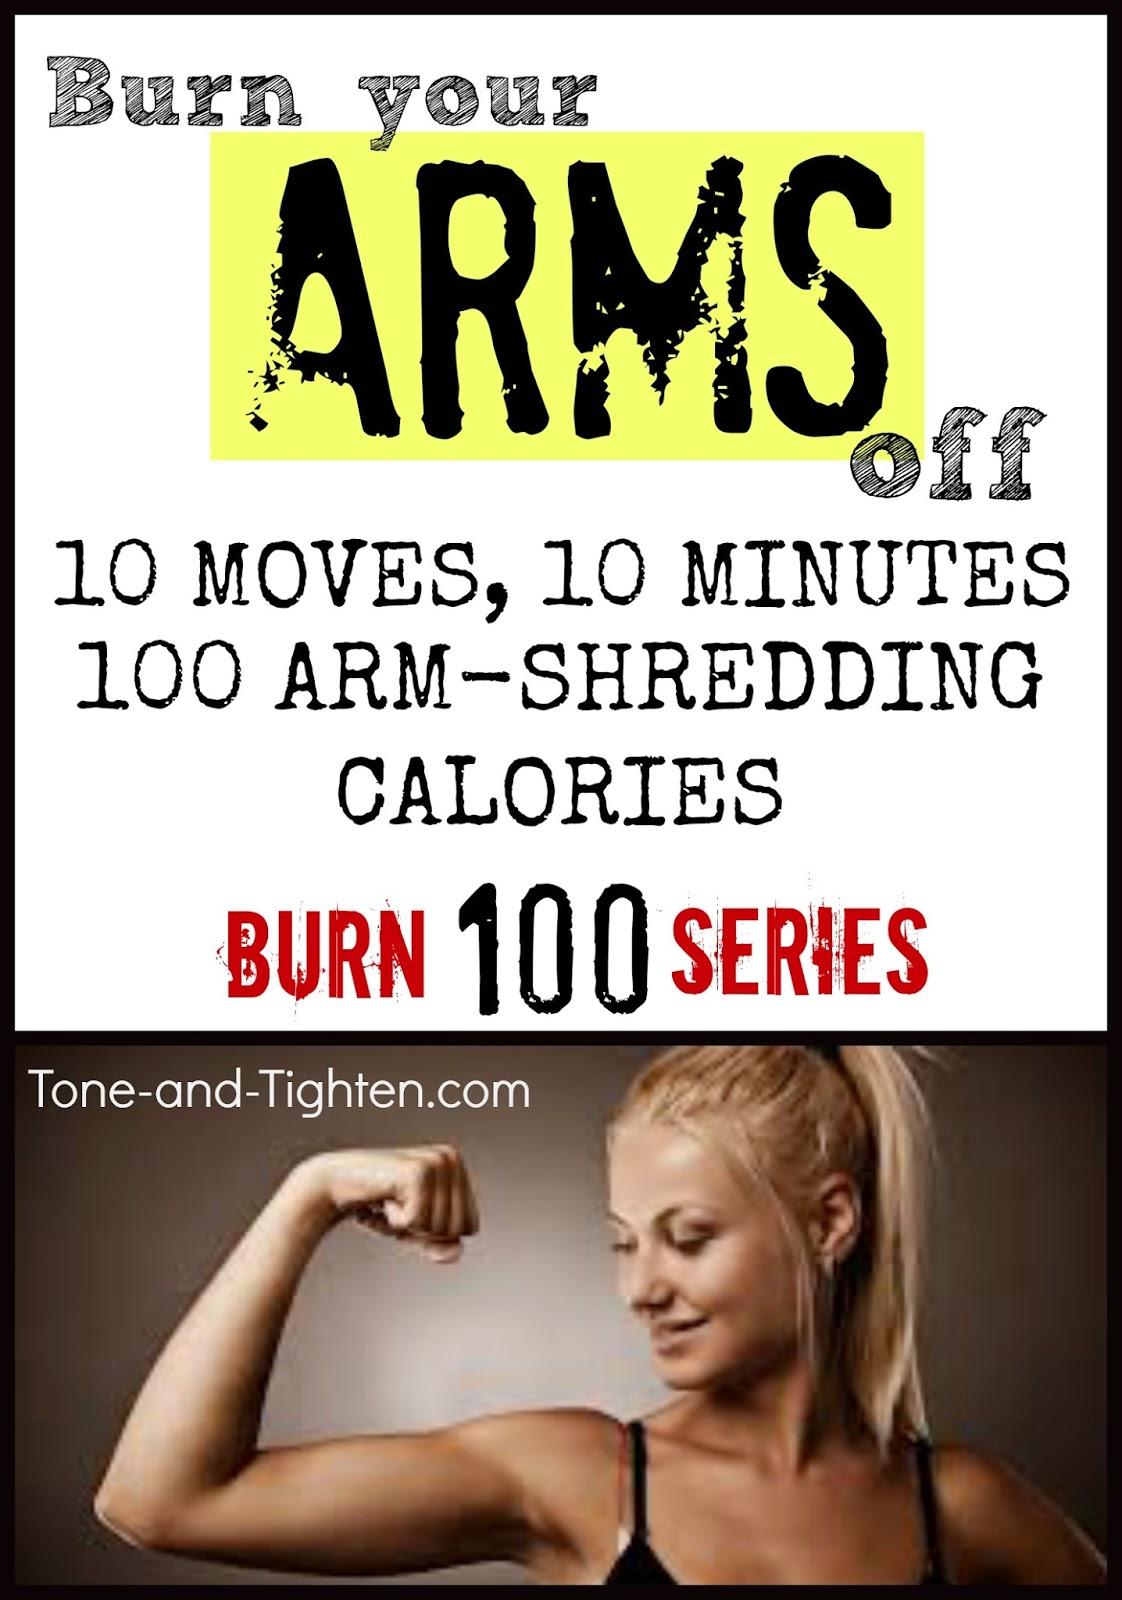 https://tone-and-tighten.com/2013/09/burn-100-calories-in-10-minutes-burn-100-series-workout-6-killer-arm-at-home-workout.html